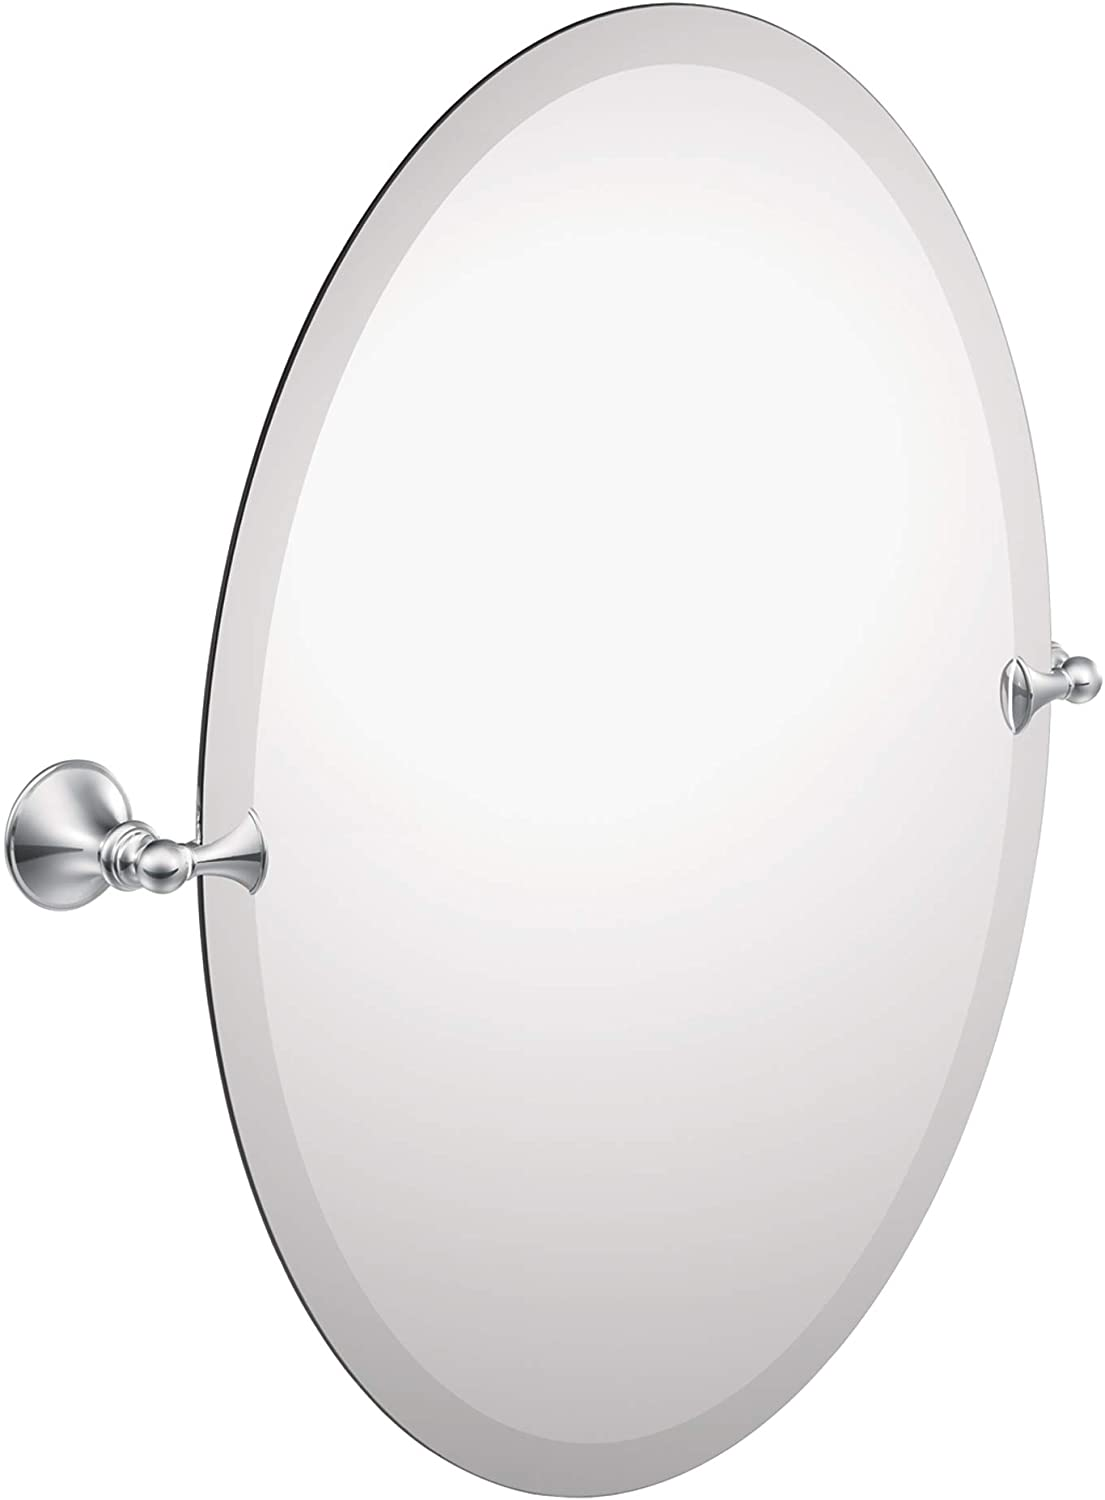 Moen DN2692CH Glenshire 26 x 22-Inch Frameless Pivoting Bathroom Tilting Mirror, Chrome: Home Improvement